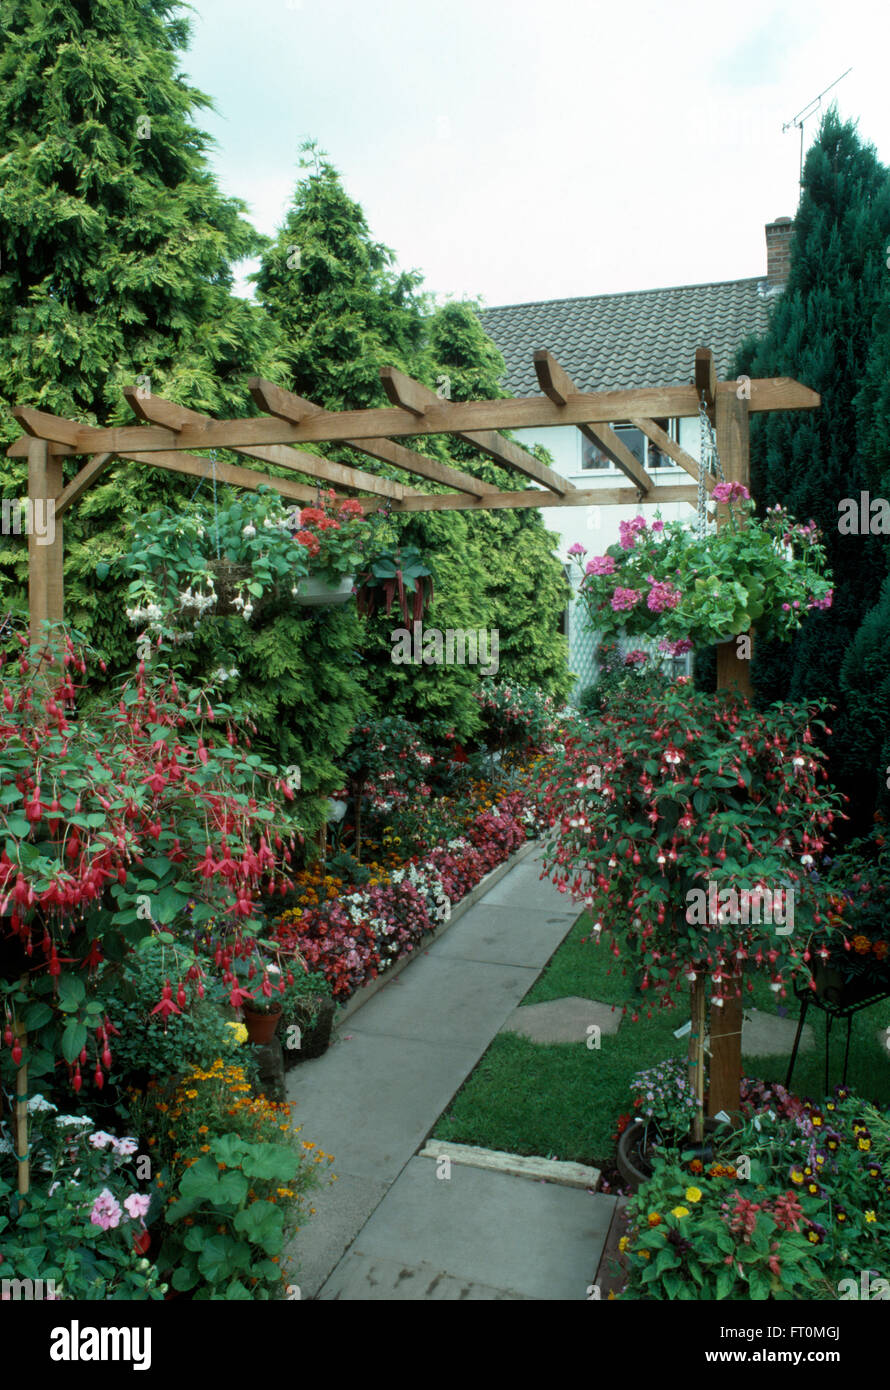 Standard fuchsias in borders beside paved path in a seventies suburban garden with conifers and a wooden pergola - Stock Image